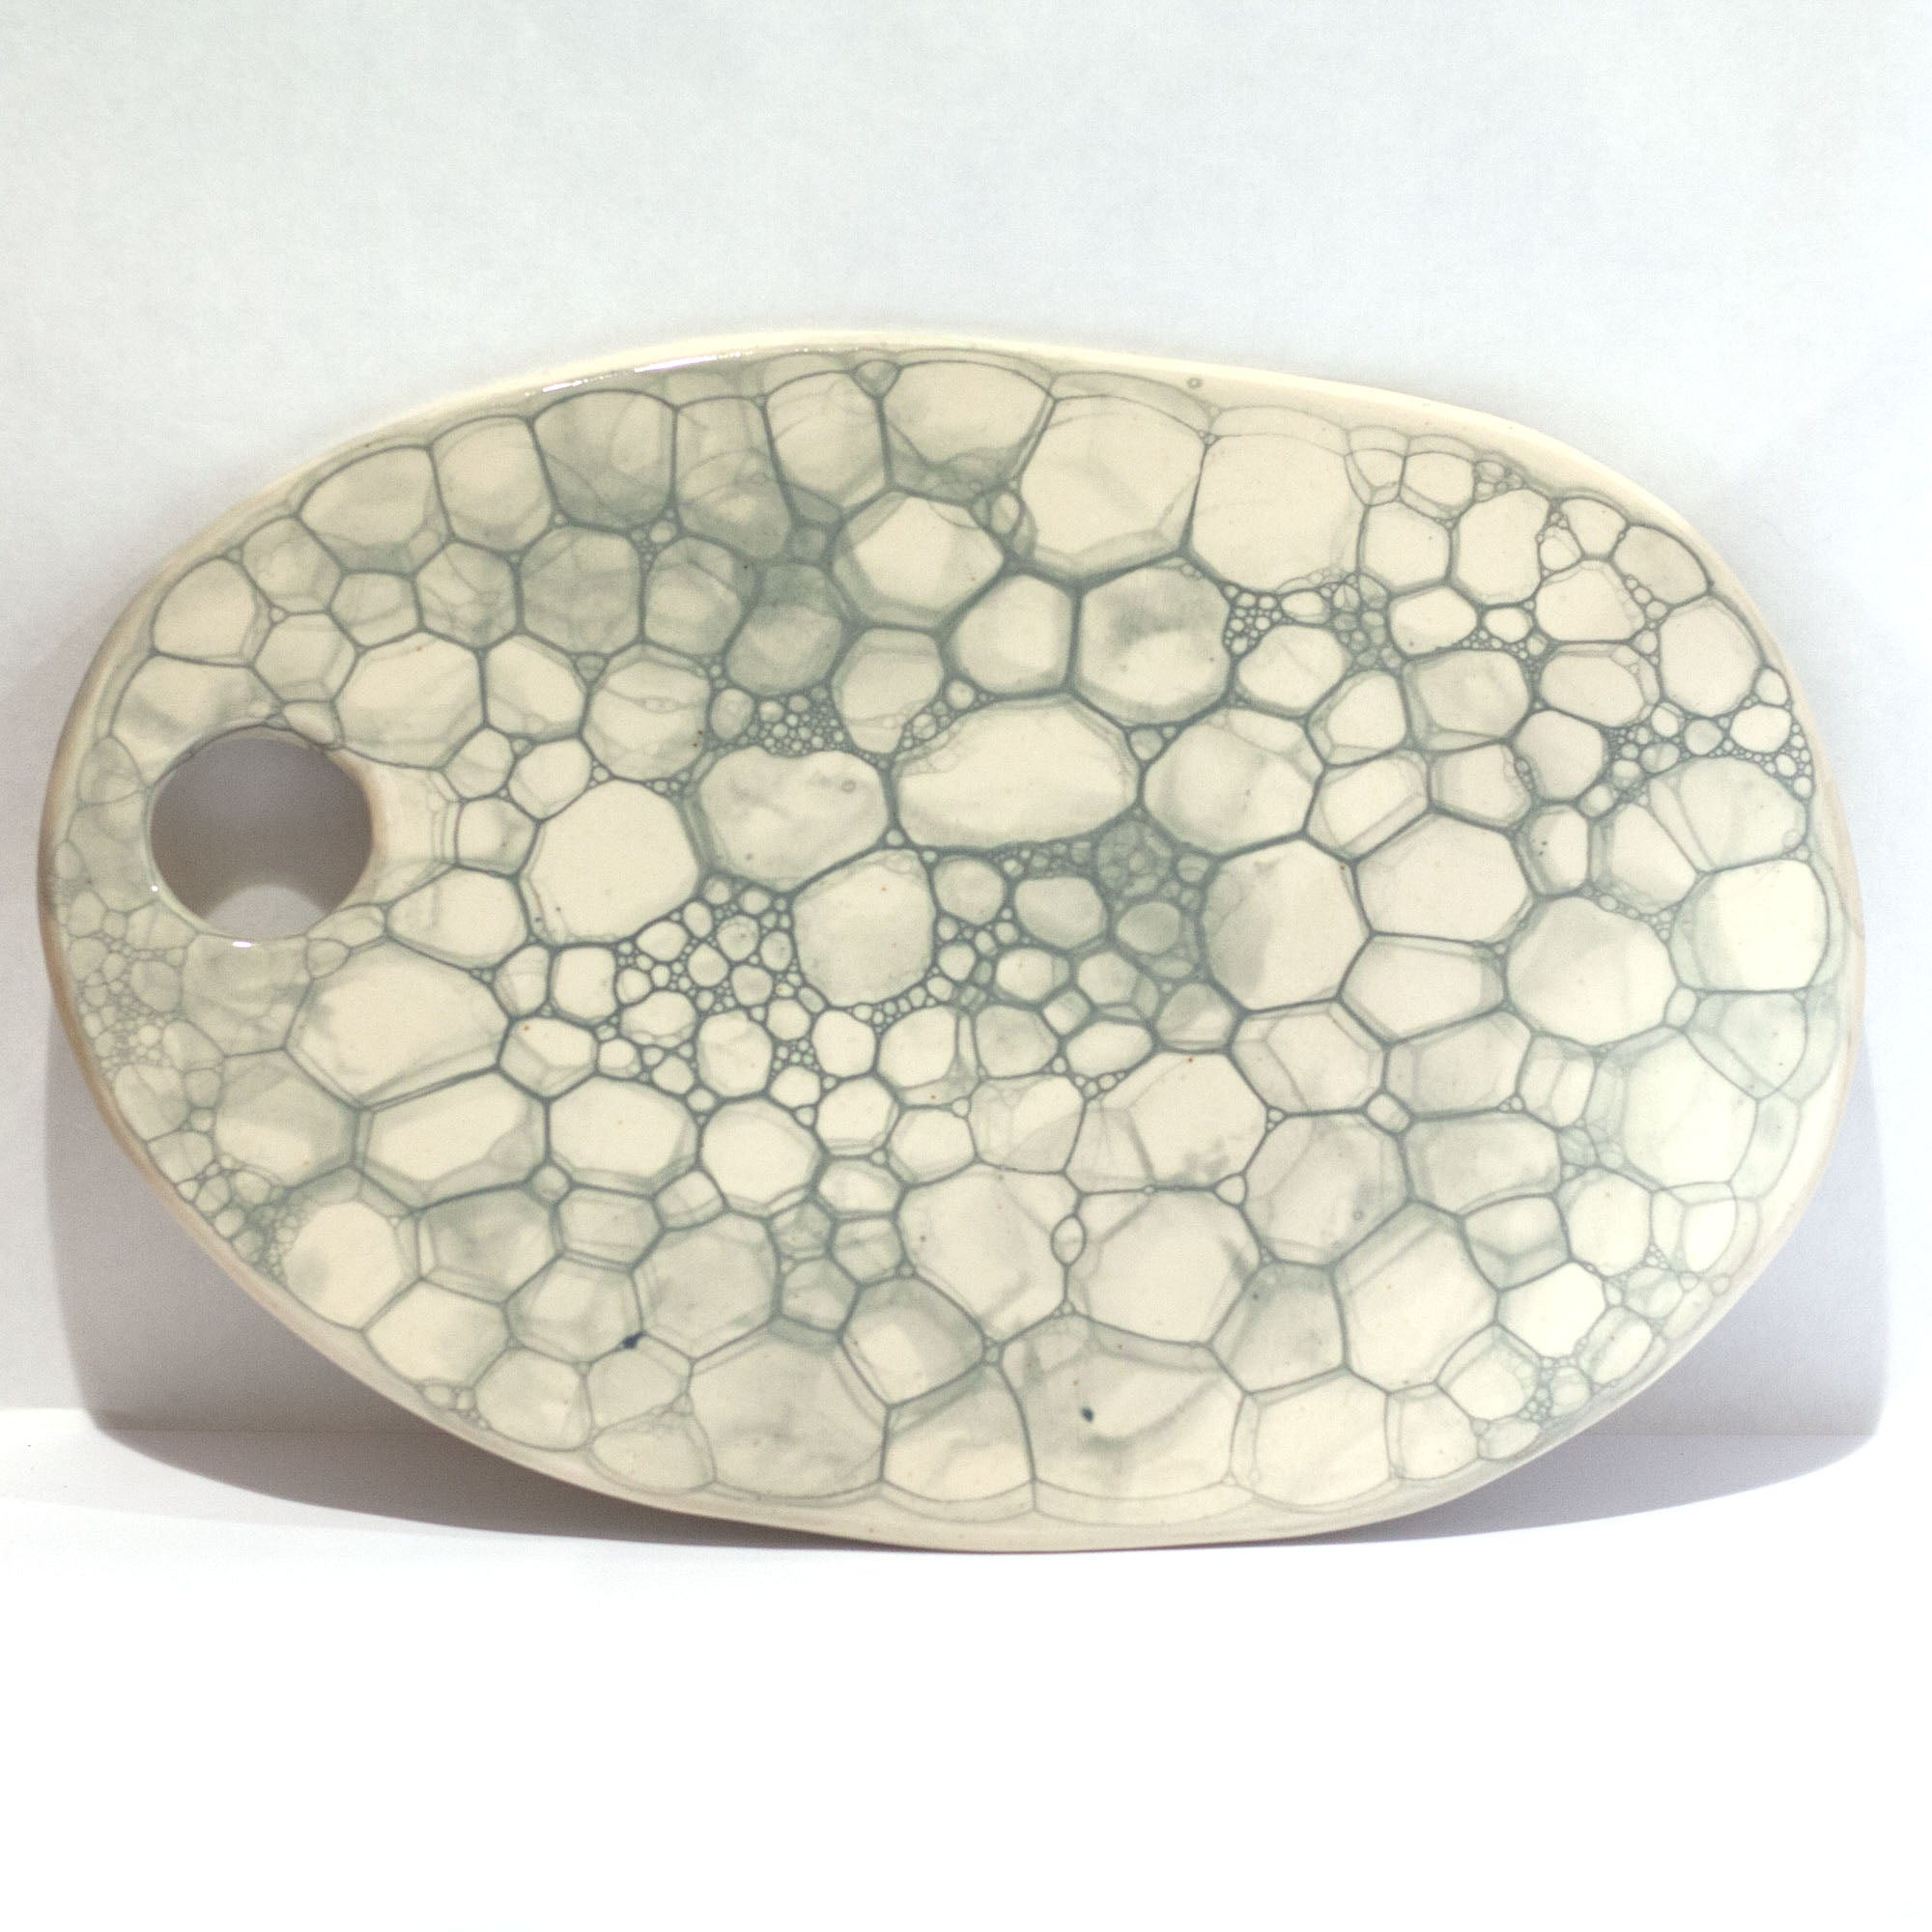 Miss Willow Designs - Extra Large Foam Series Platter (lwi036)